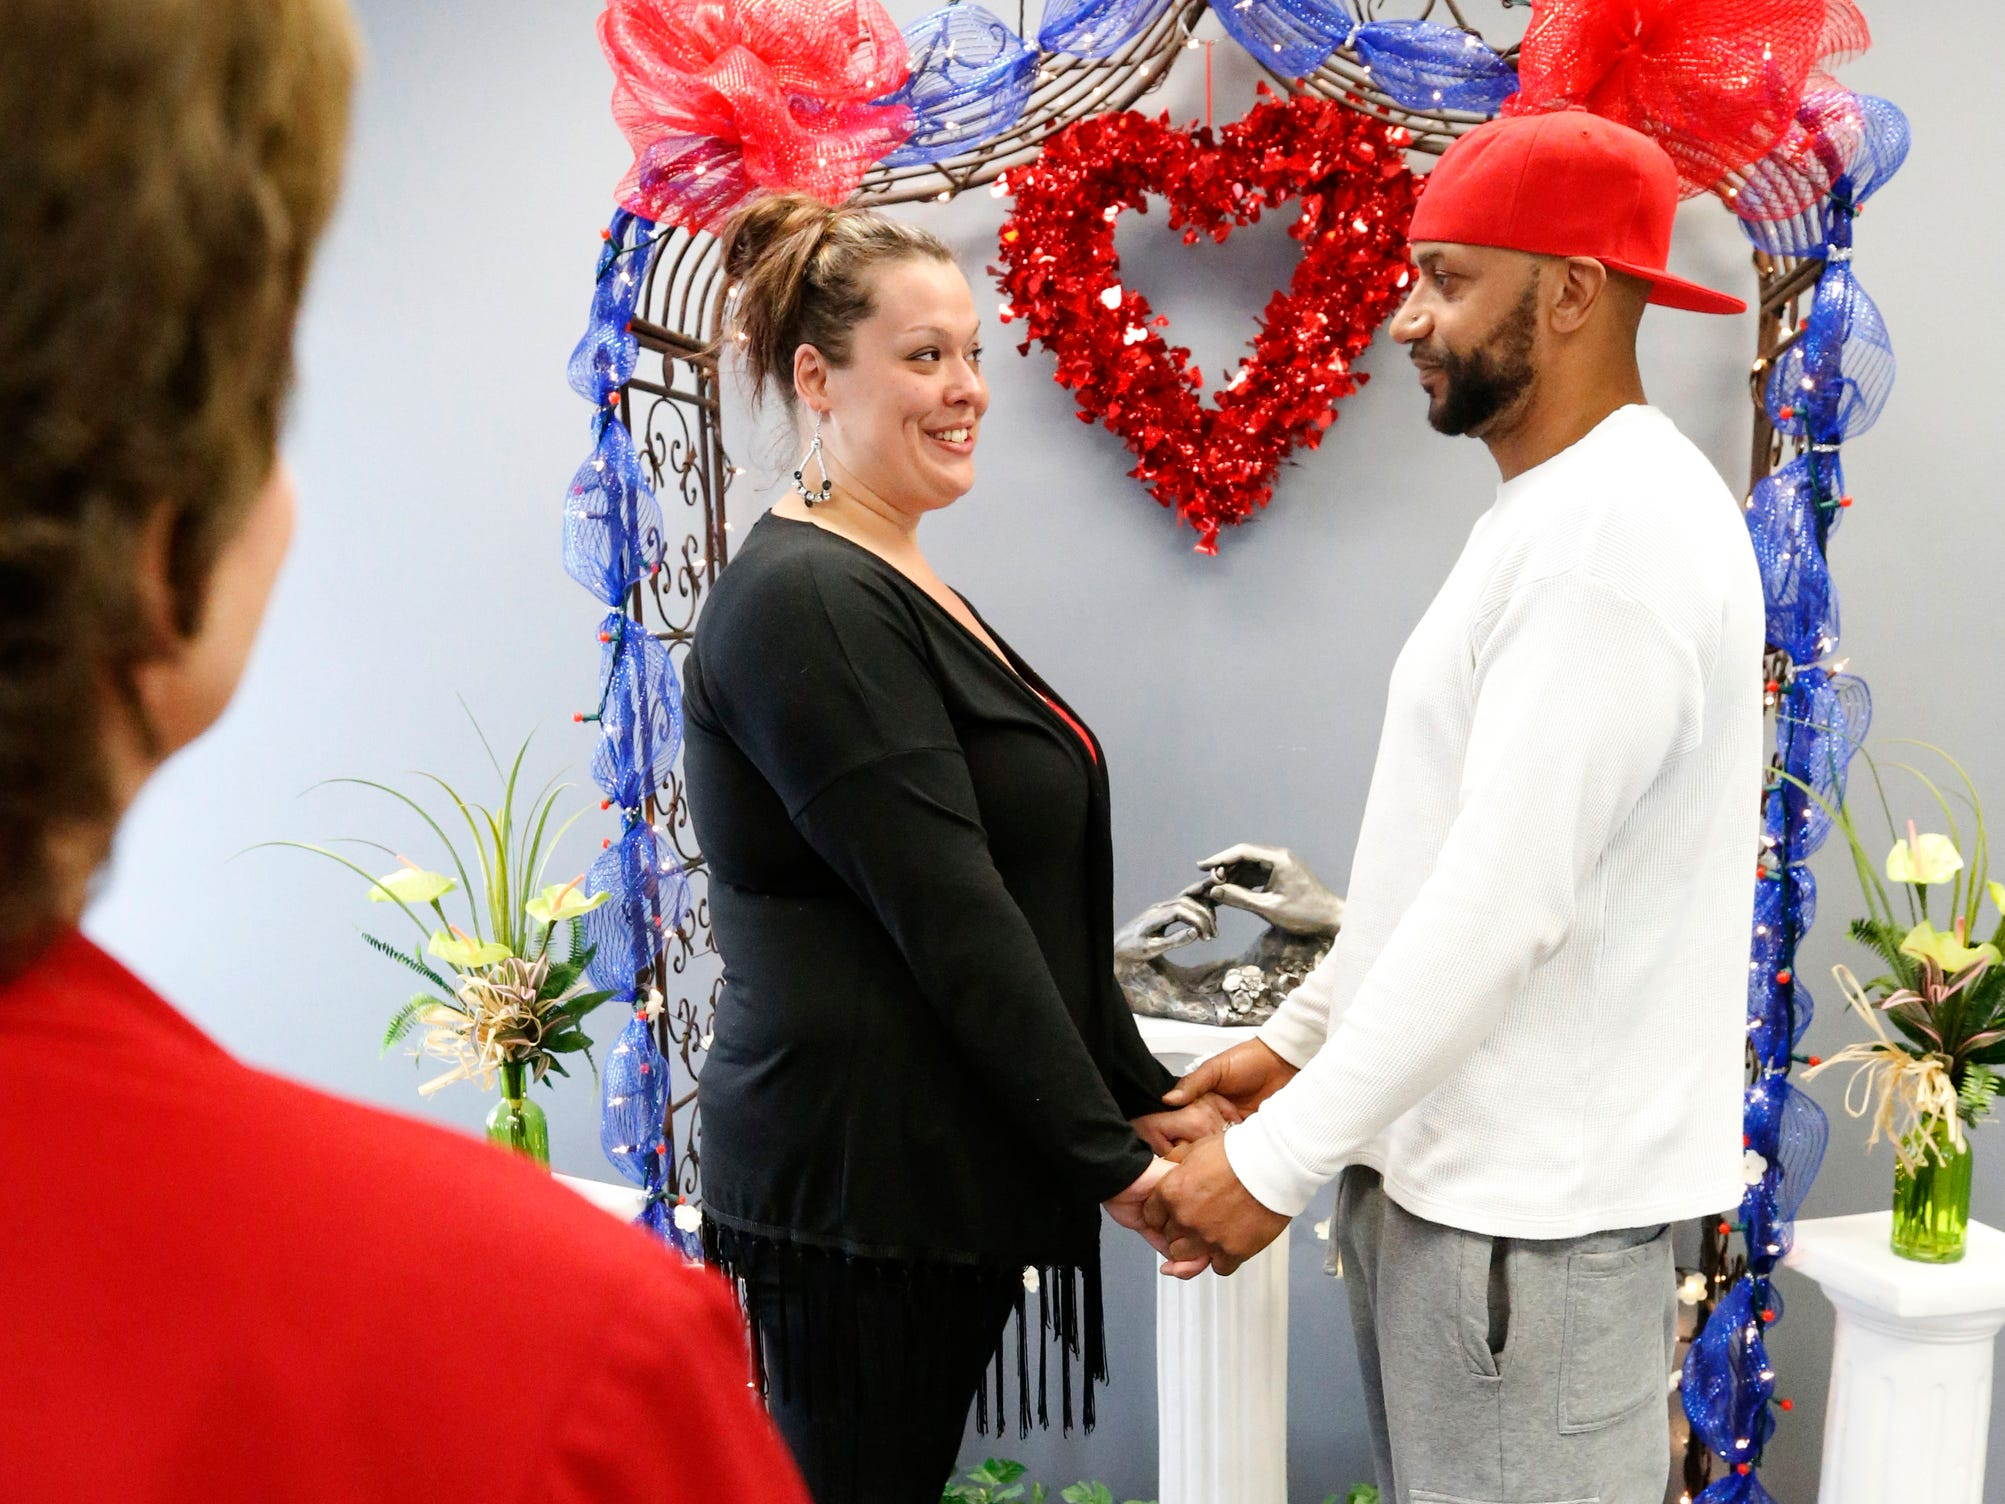 Kimberly (Ervin) Aiden and Shermaine Aiden are married by Mollie Slaybaugh at the Marry Me of Tennessee Wedding Chapel on Valentine's Day on Thursday, Feb. 14, 2019.